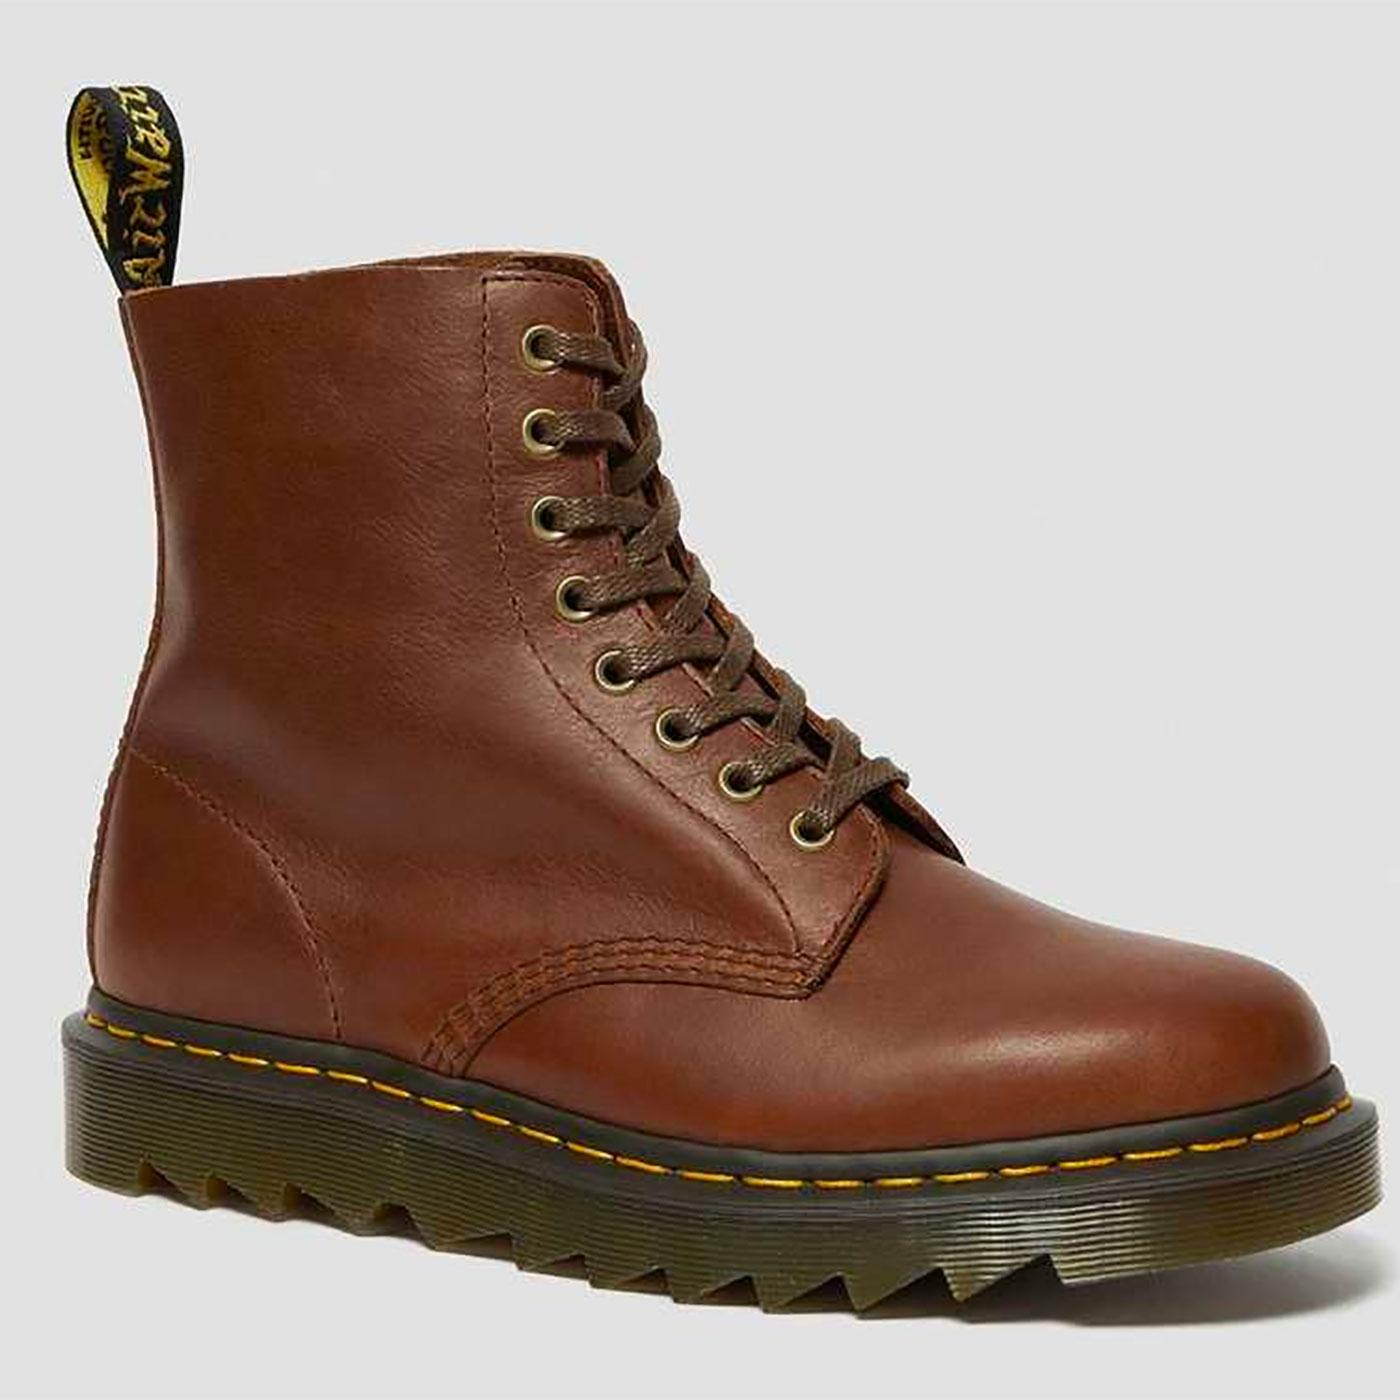 DR MARTENS 1460 Pascal Ziggy 8 Eyelet Boots (Tan)